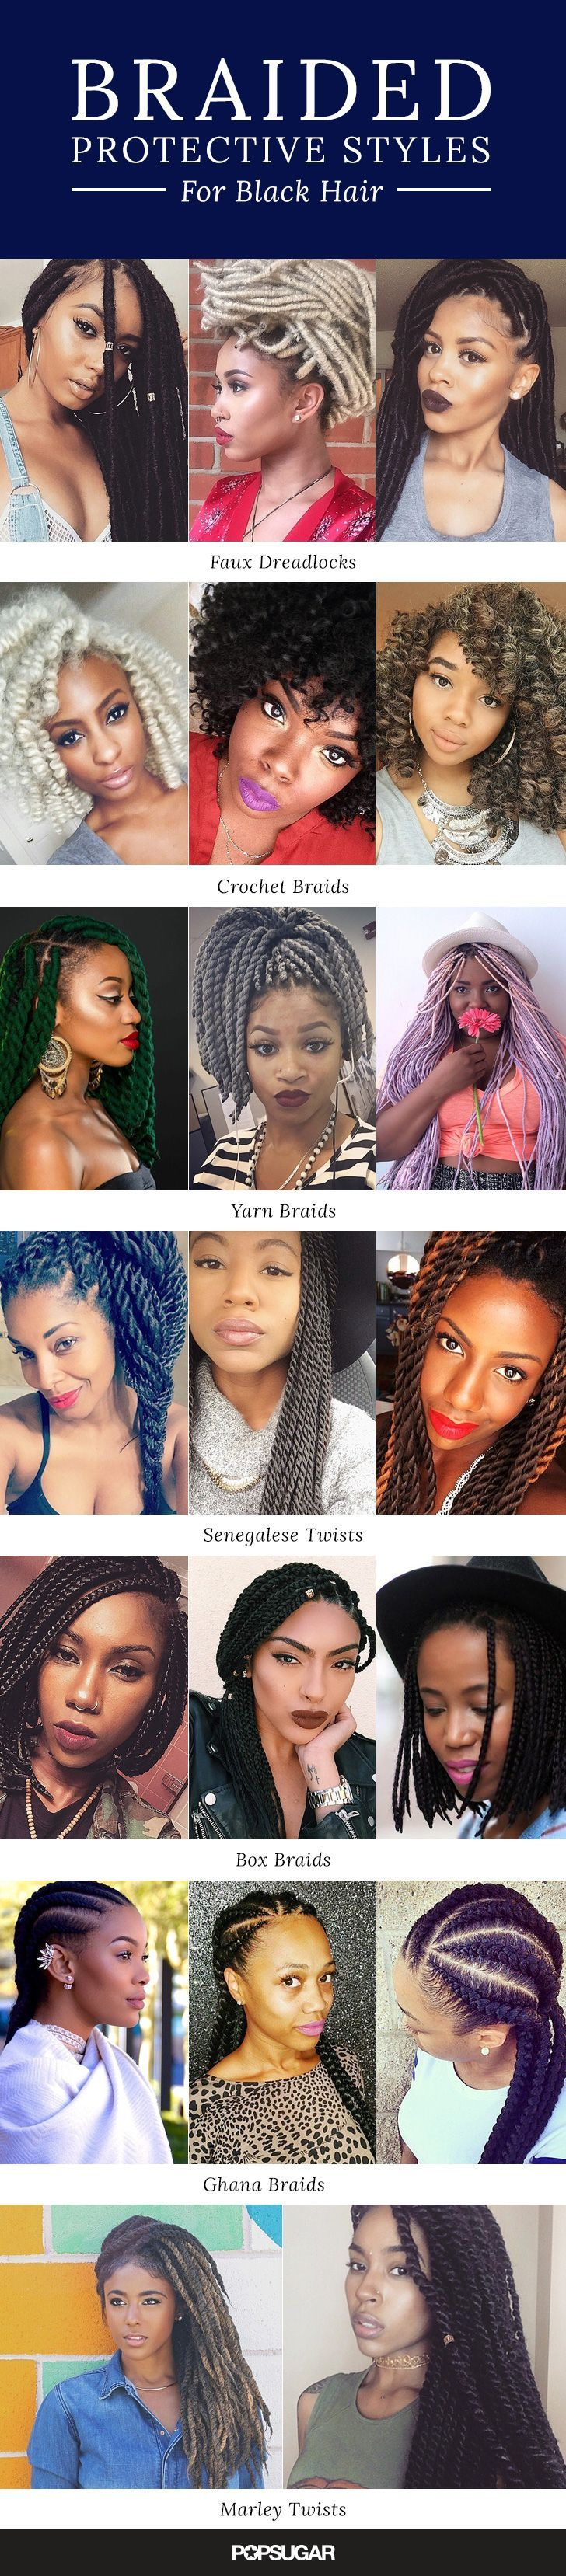 The Ultimate Guide To Summer Braids For Black Girls Braids